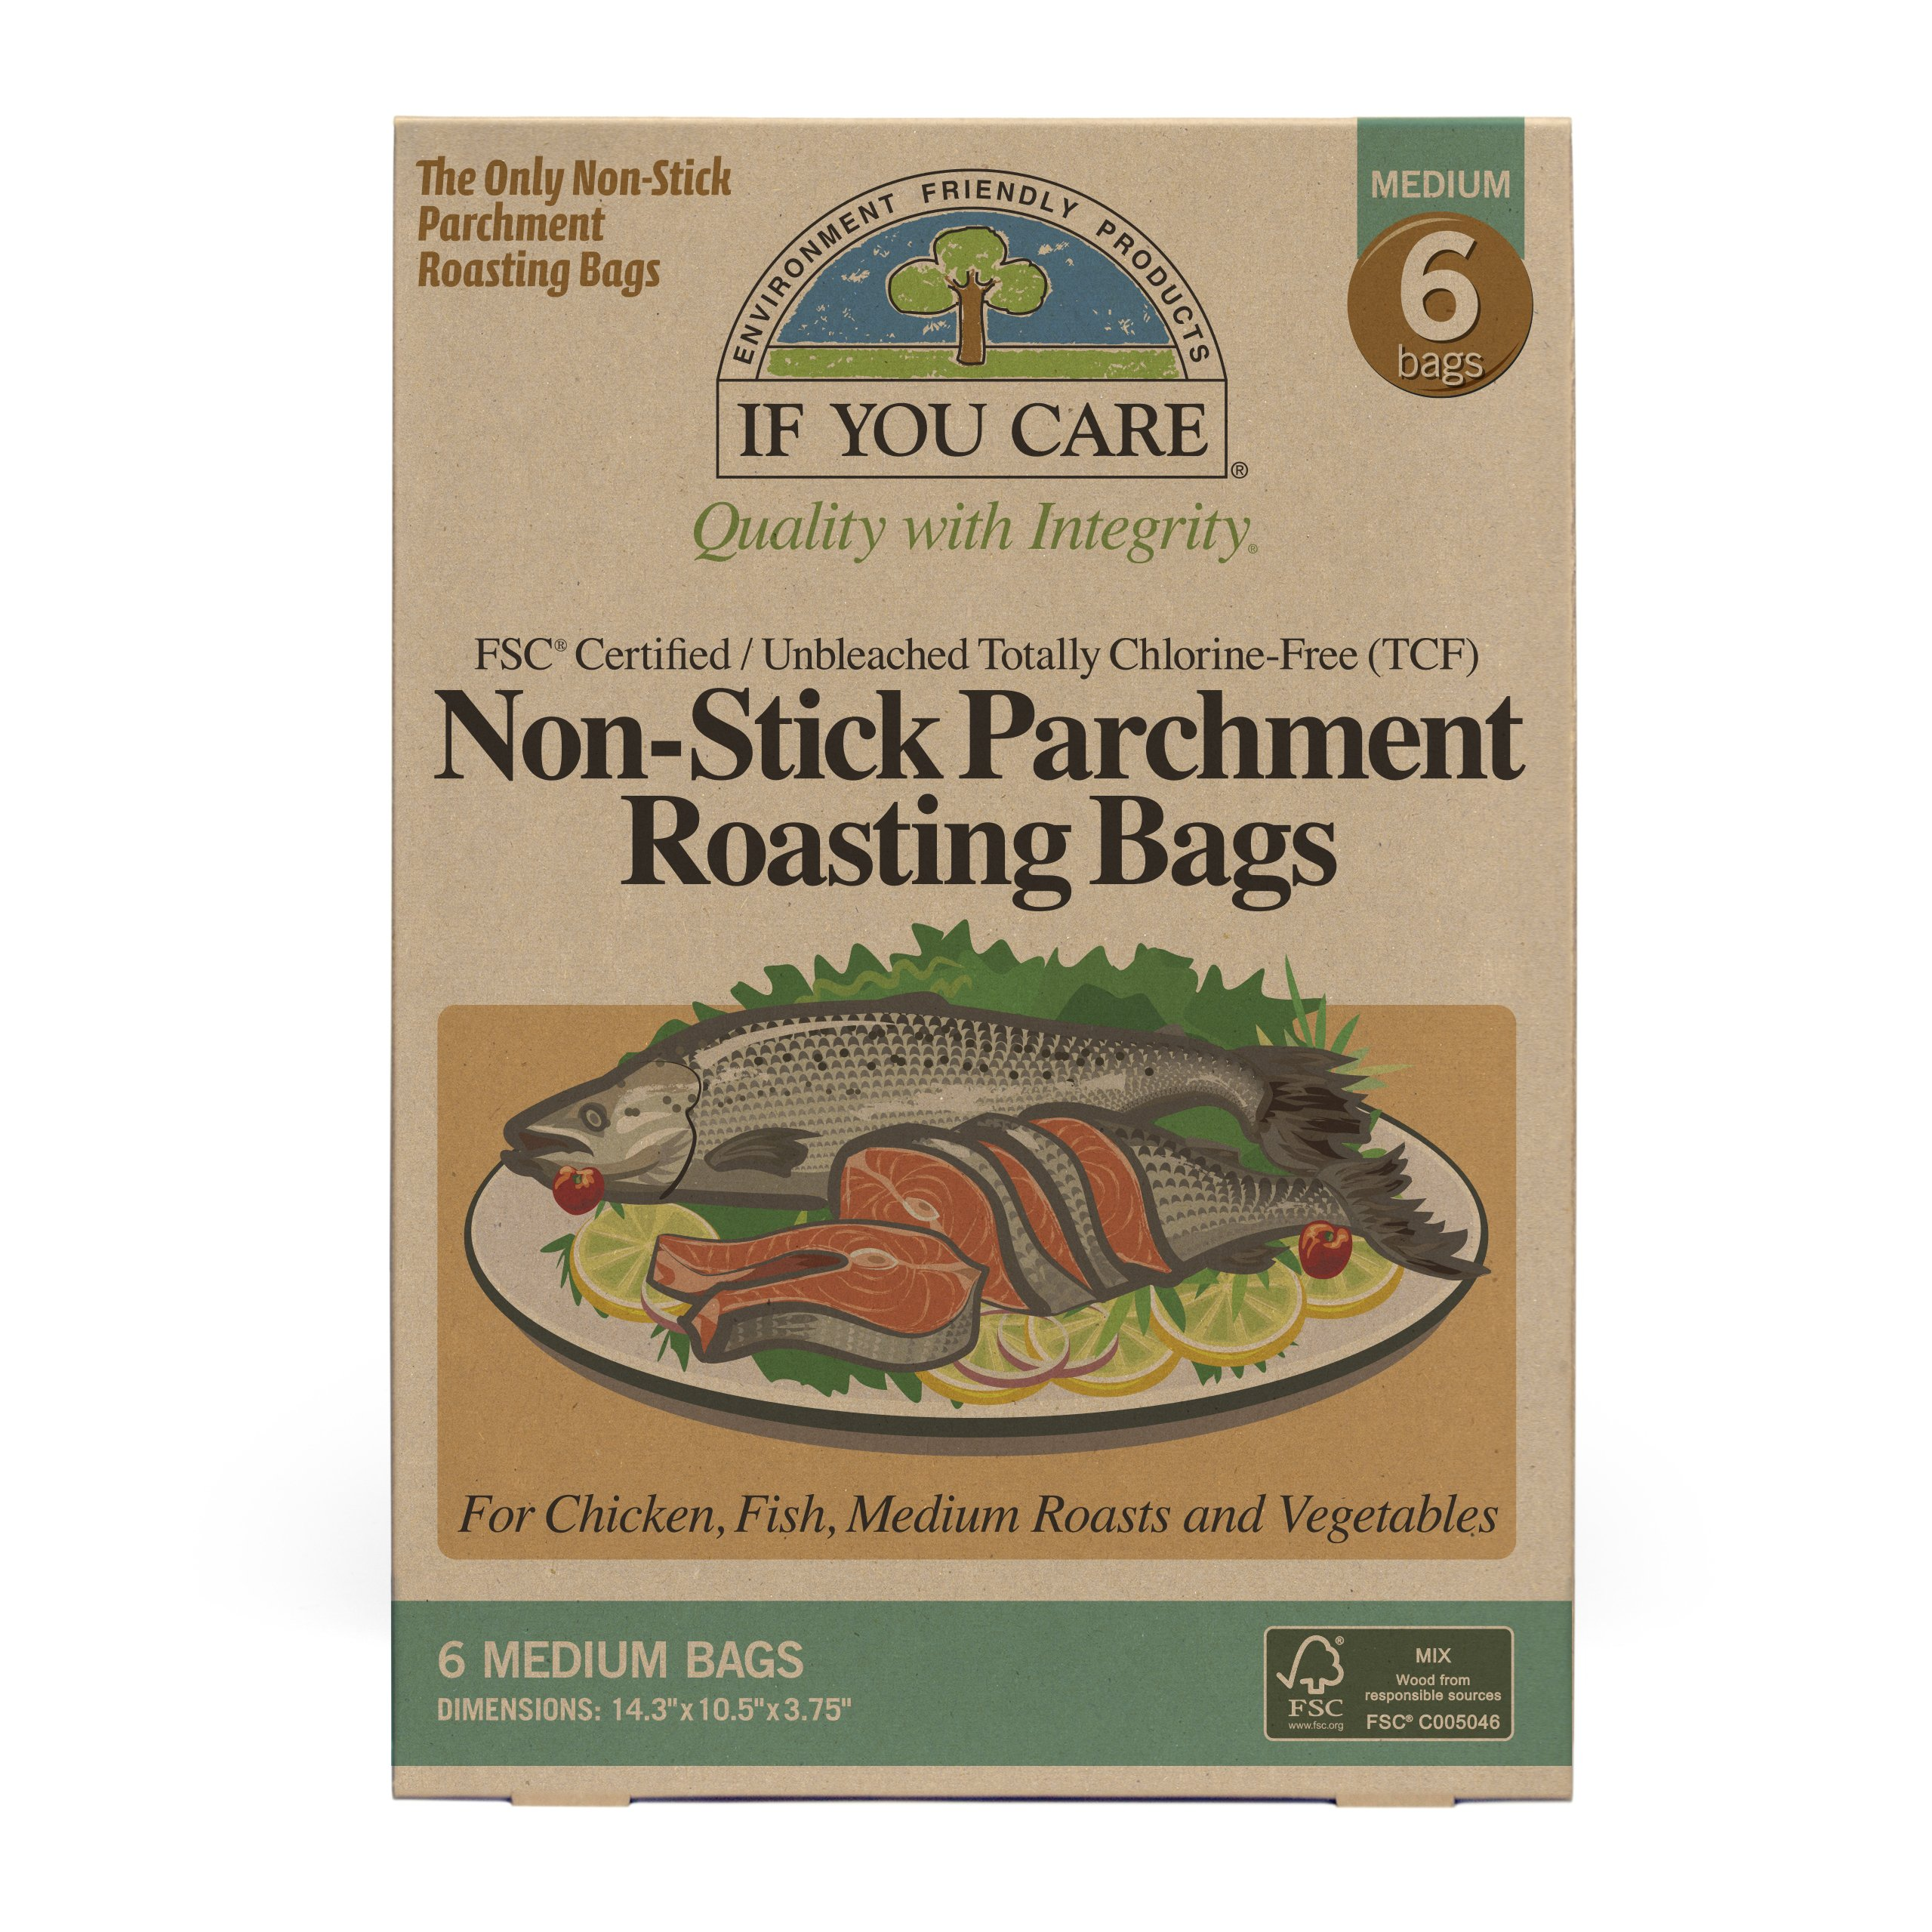 IF YOU CARE Non-Stick Parchment Roasting Bags, Medium